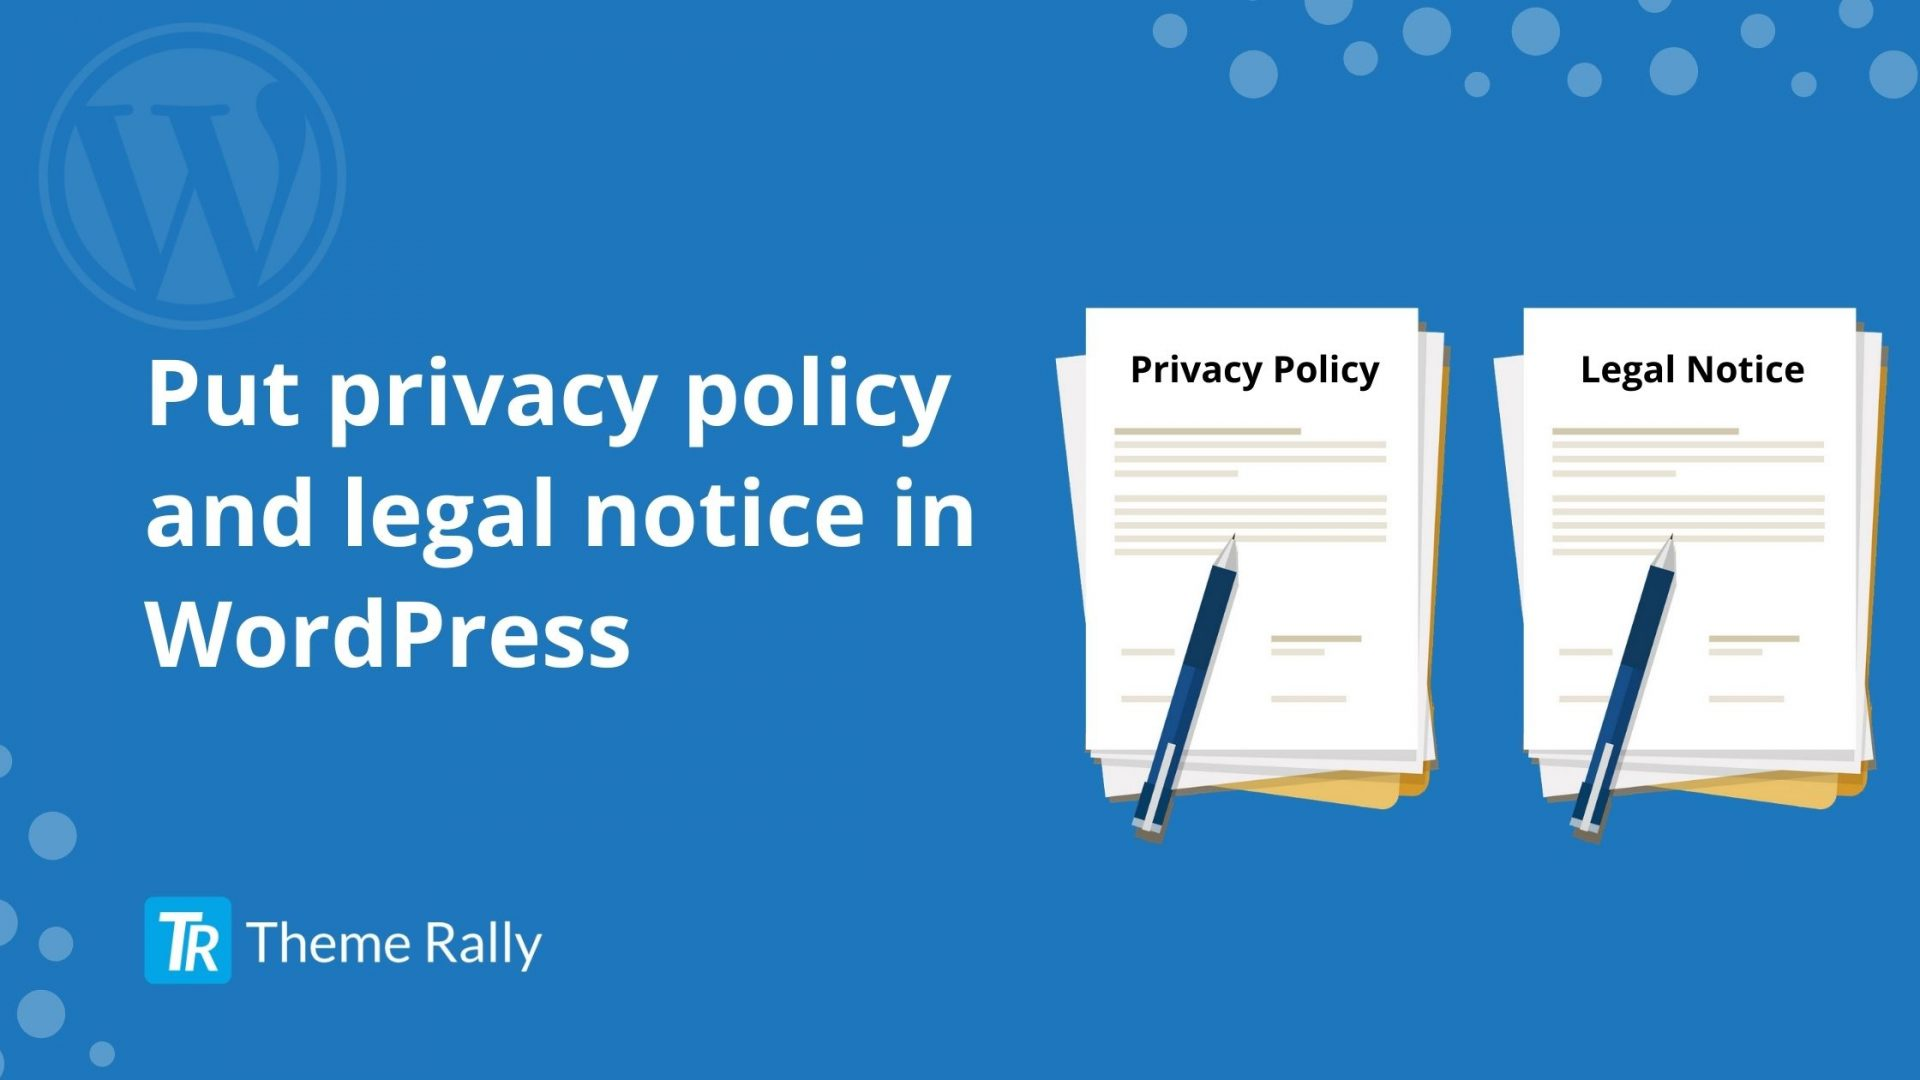 Privacy policy and legal notice in WordPress